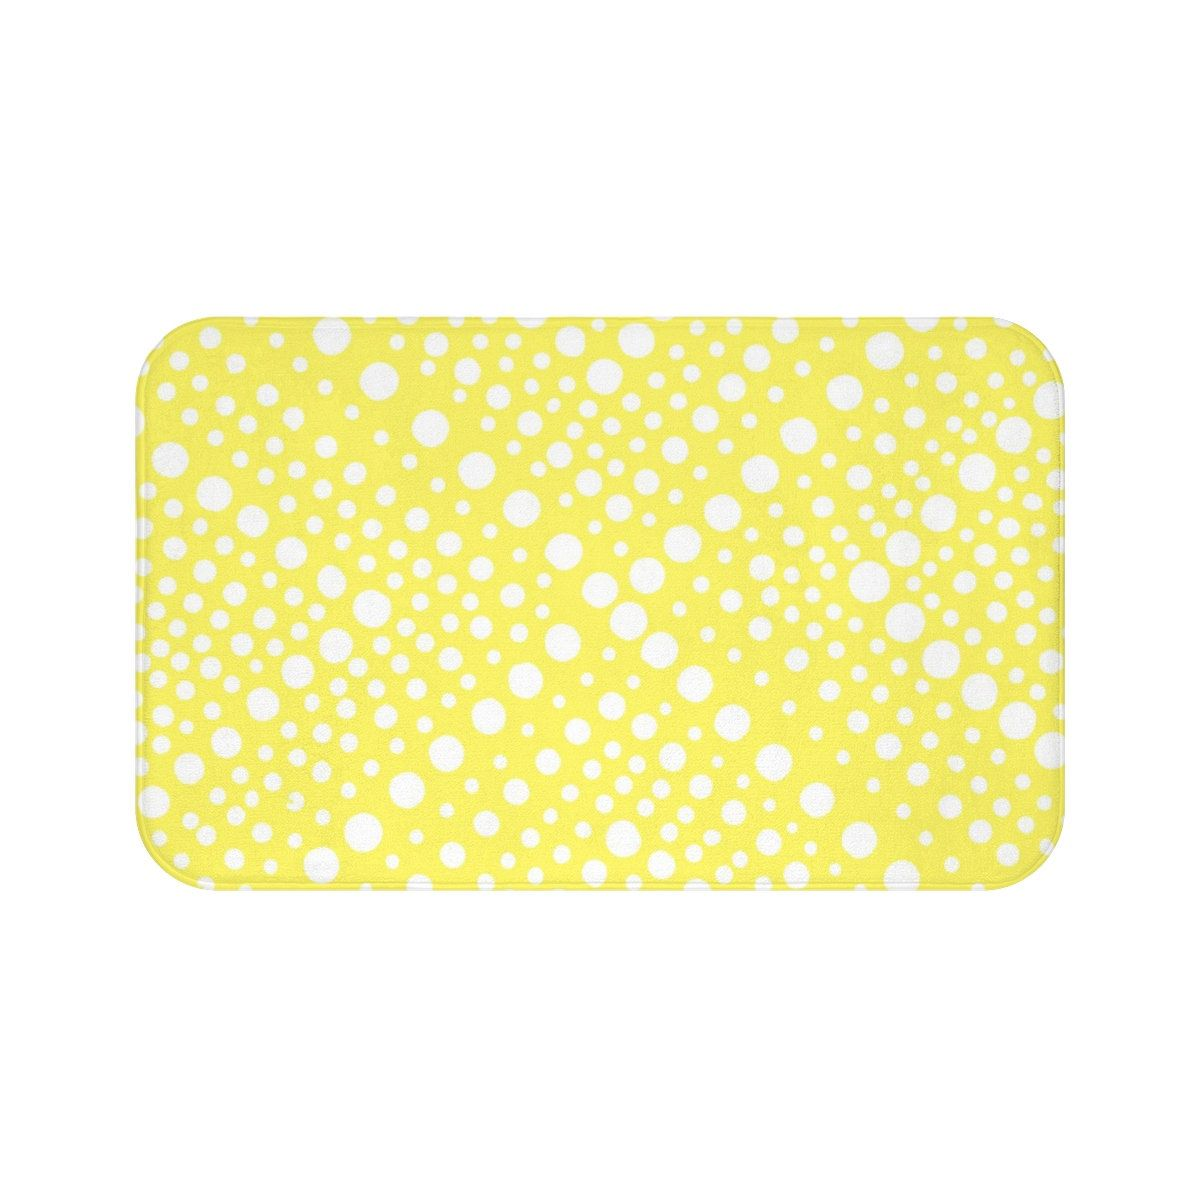 Yellow With White Squiggly Lines Bath Mat By Shelley Ylst Art